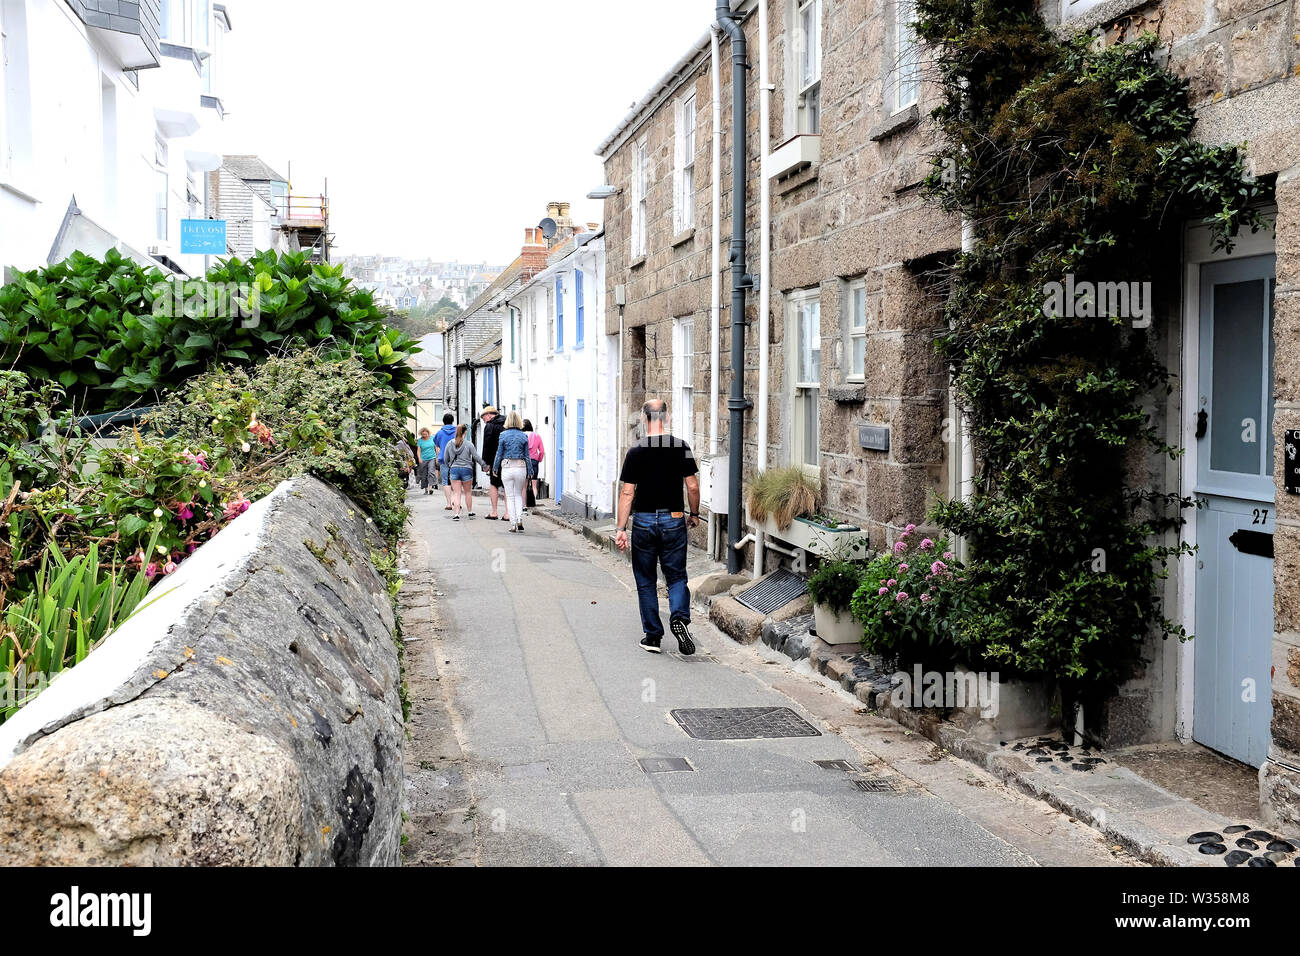 St. Ives, Cornwall, UK. June 29, 2019.  Holidaymakers walking the coast path down the Warren in The town of St. Ives in Cornwall, UK. - Stock Image